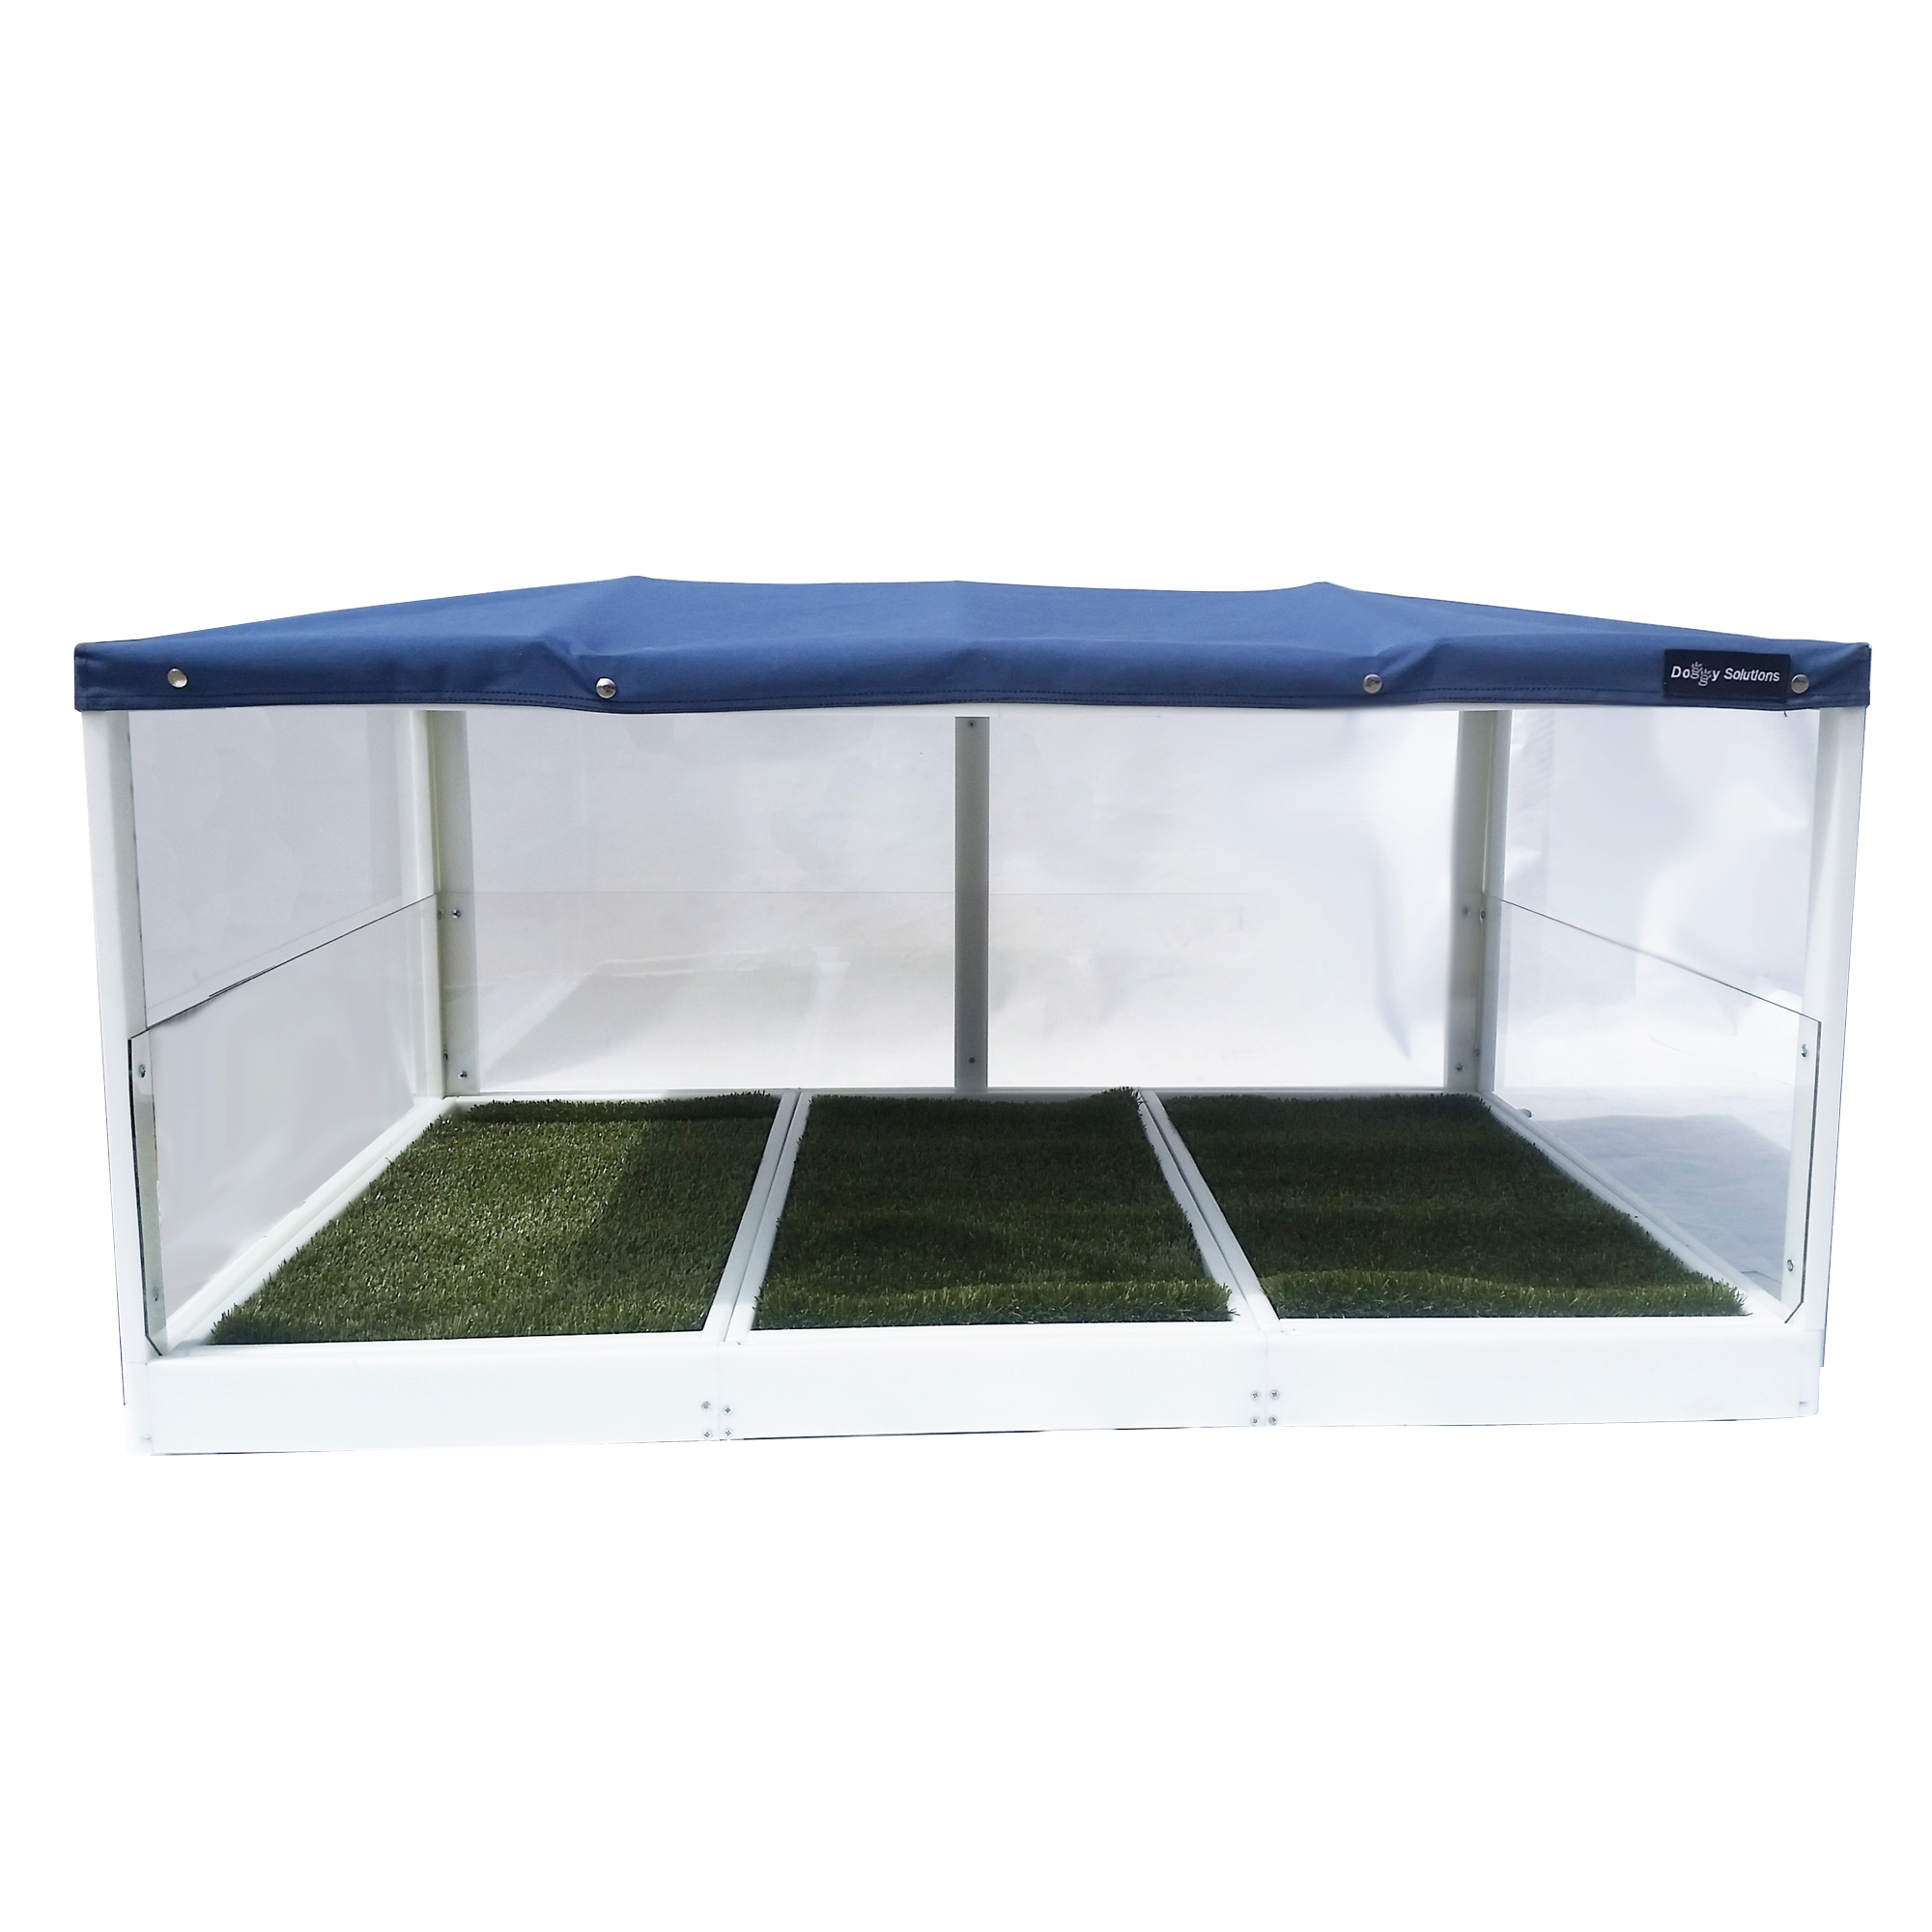 LGphotos11.25.15-02_result  sc 1 st  Doggy Solutions & Elevated Canopy Pet Potty Large Dog Litter Box - Doggy Solutions